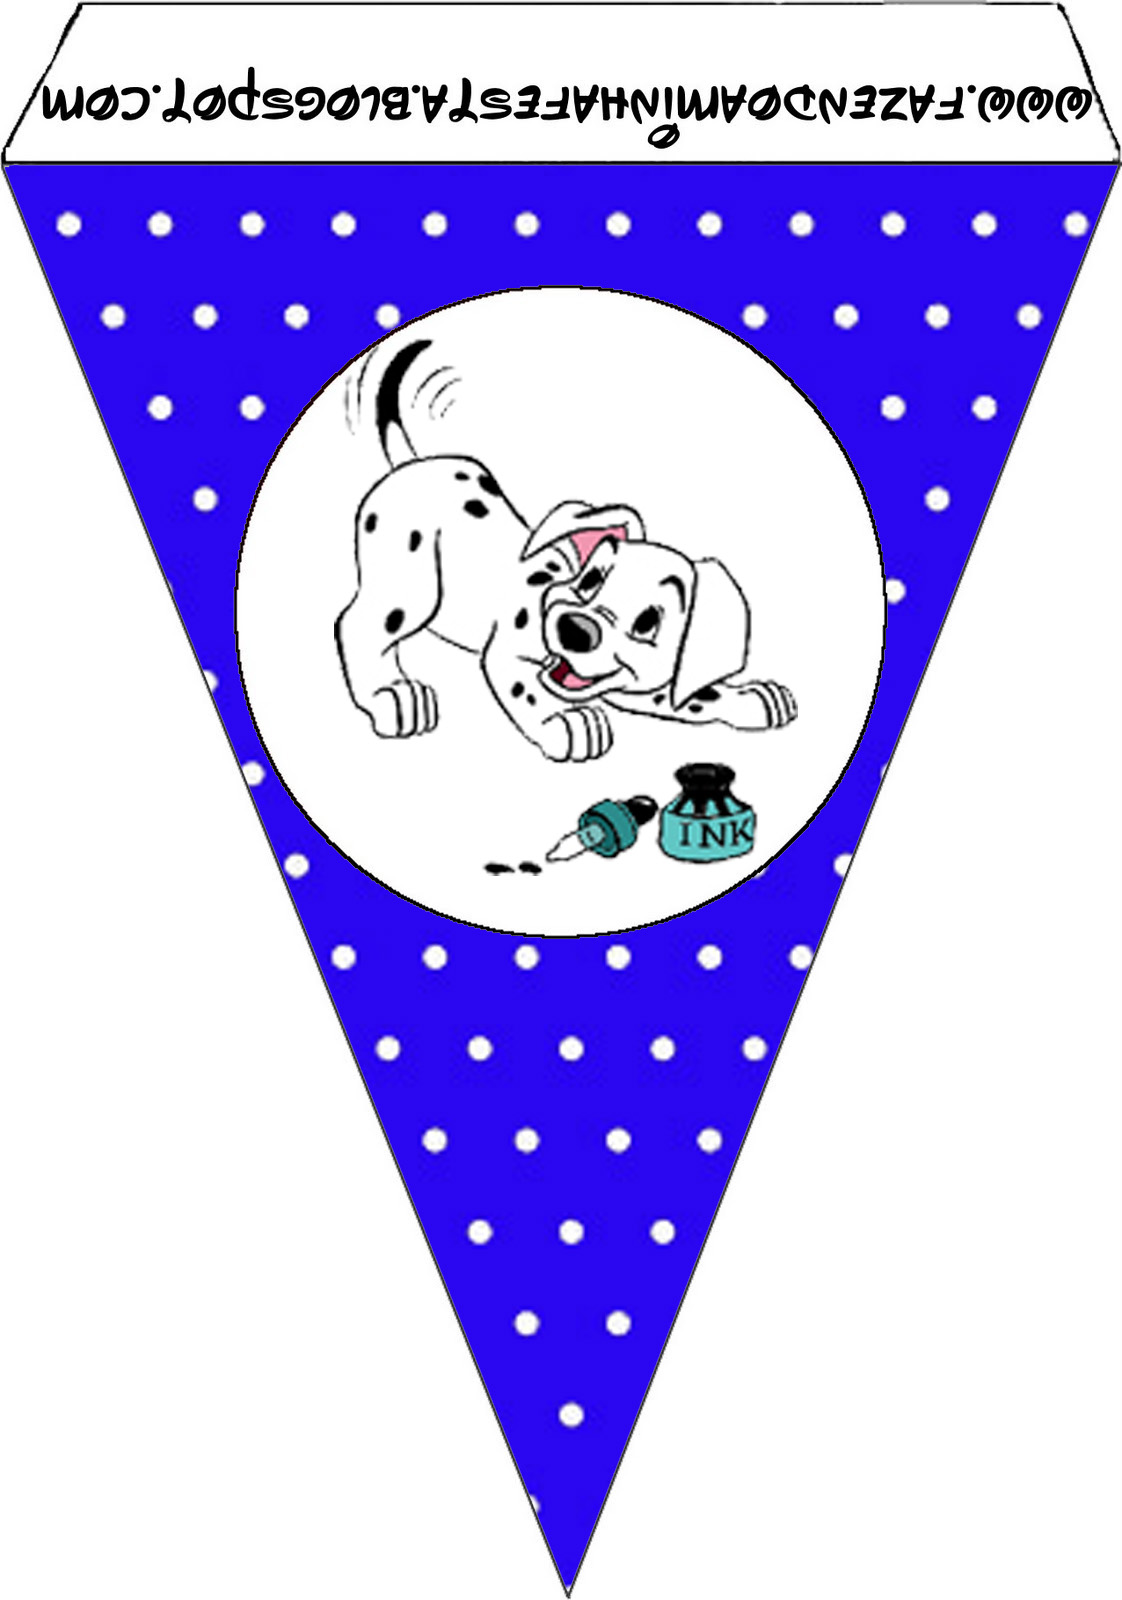 101 Dalmatians In Black And Blue Free Party Printables Oh My Fiesta In English